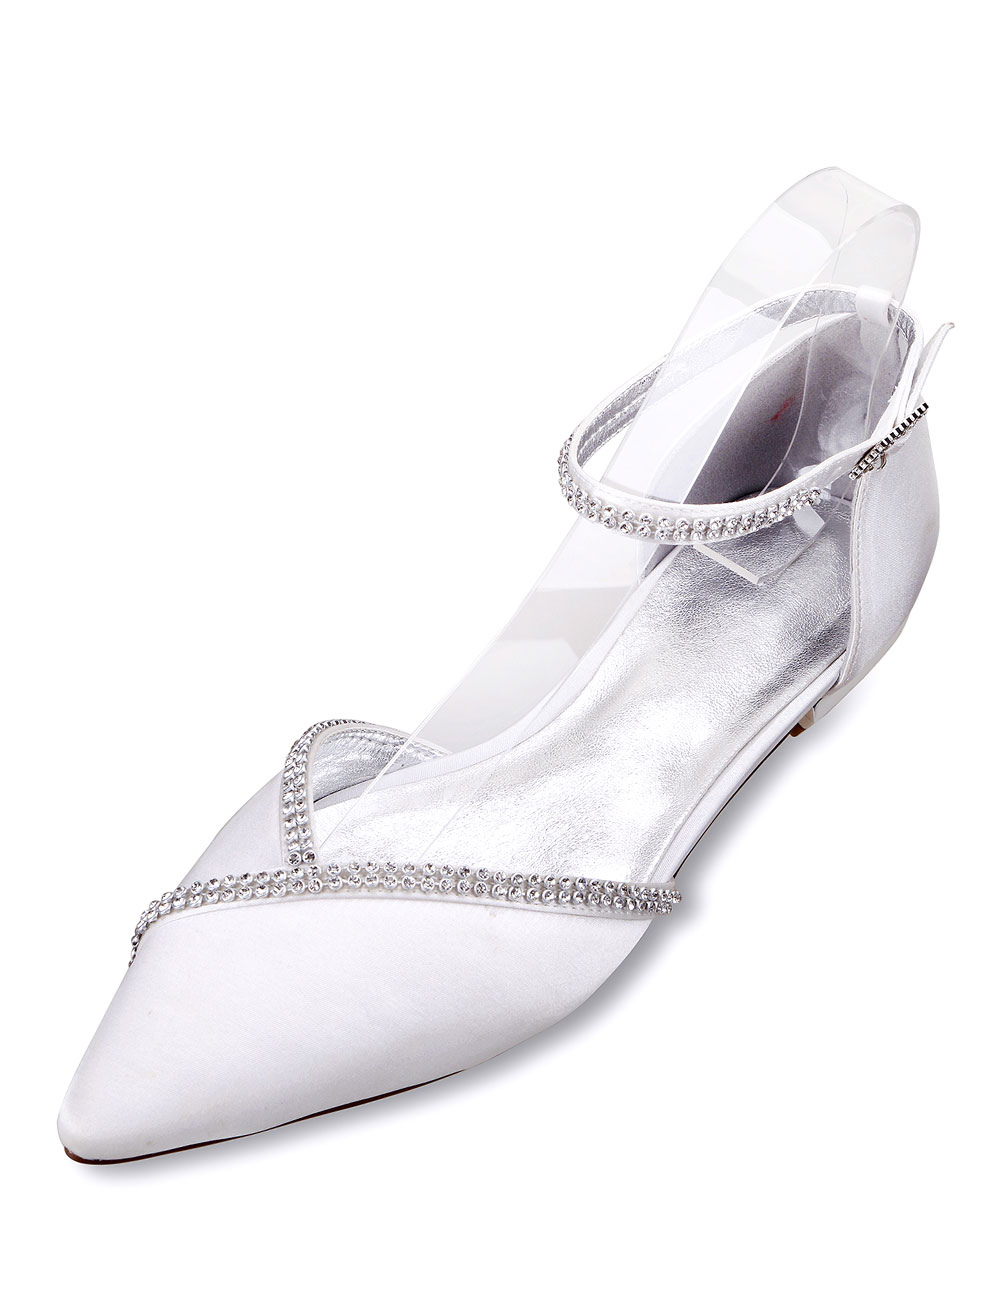 Buy White Wedding Shoes Satin Pointed Toe Rhinestones Ankle Strap Flat Bridal Shoes for $45.59 in Milanoo store